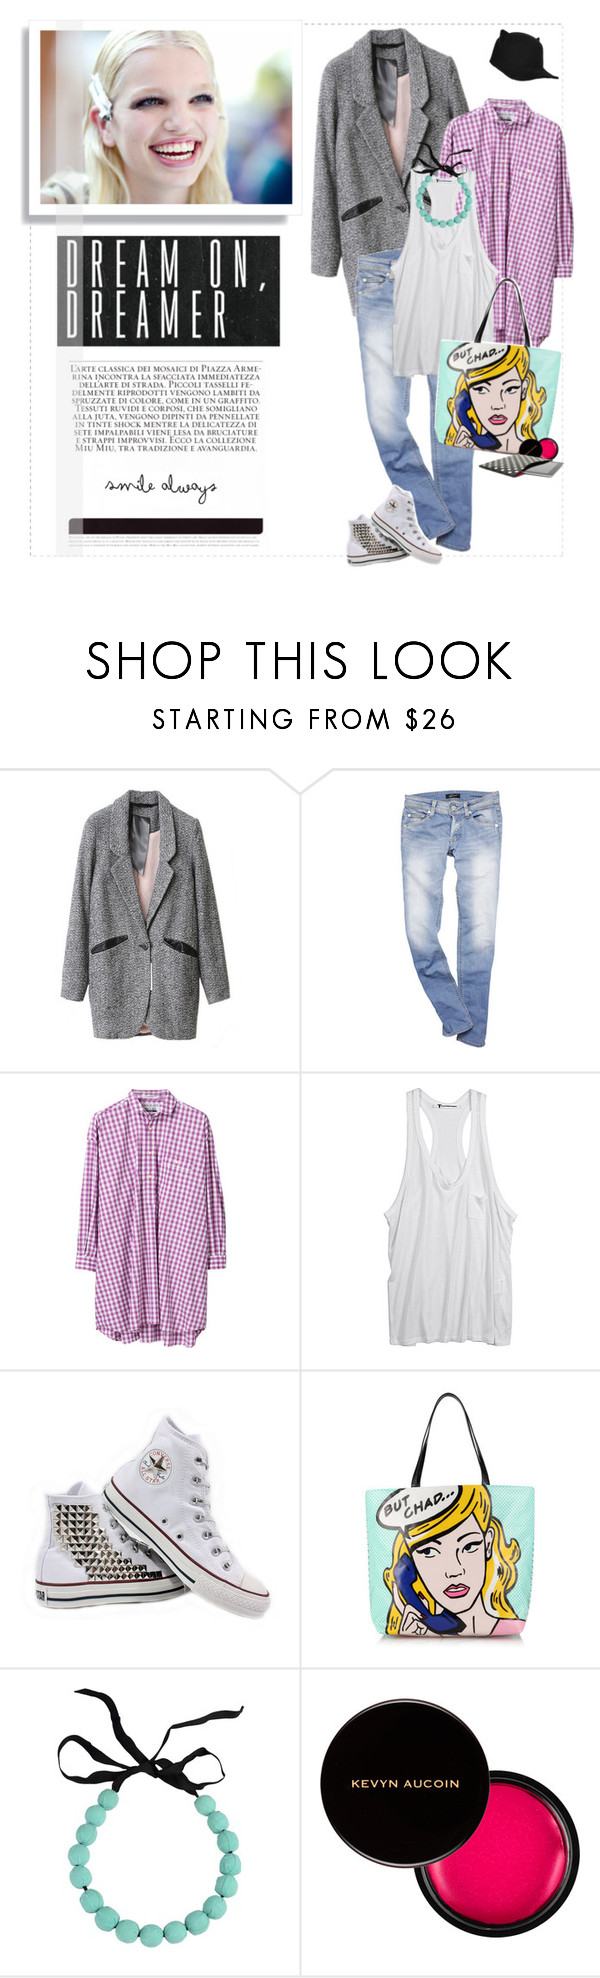 """""""Dream on, dreamer!"""" by blackpearls ❤ liked on Polyvore featuring Daphne, Iliann Loeb, Alexander Wang, Converse, Kate Spade, Marni, Kevyn Aucoin and Givenchy"""